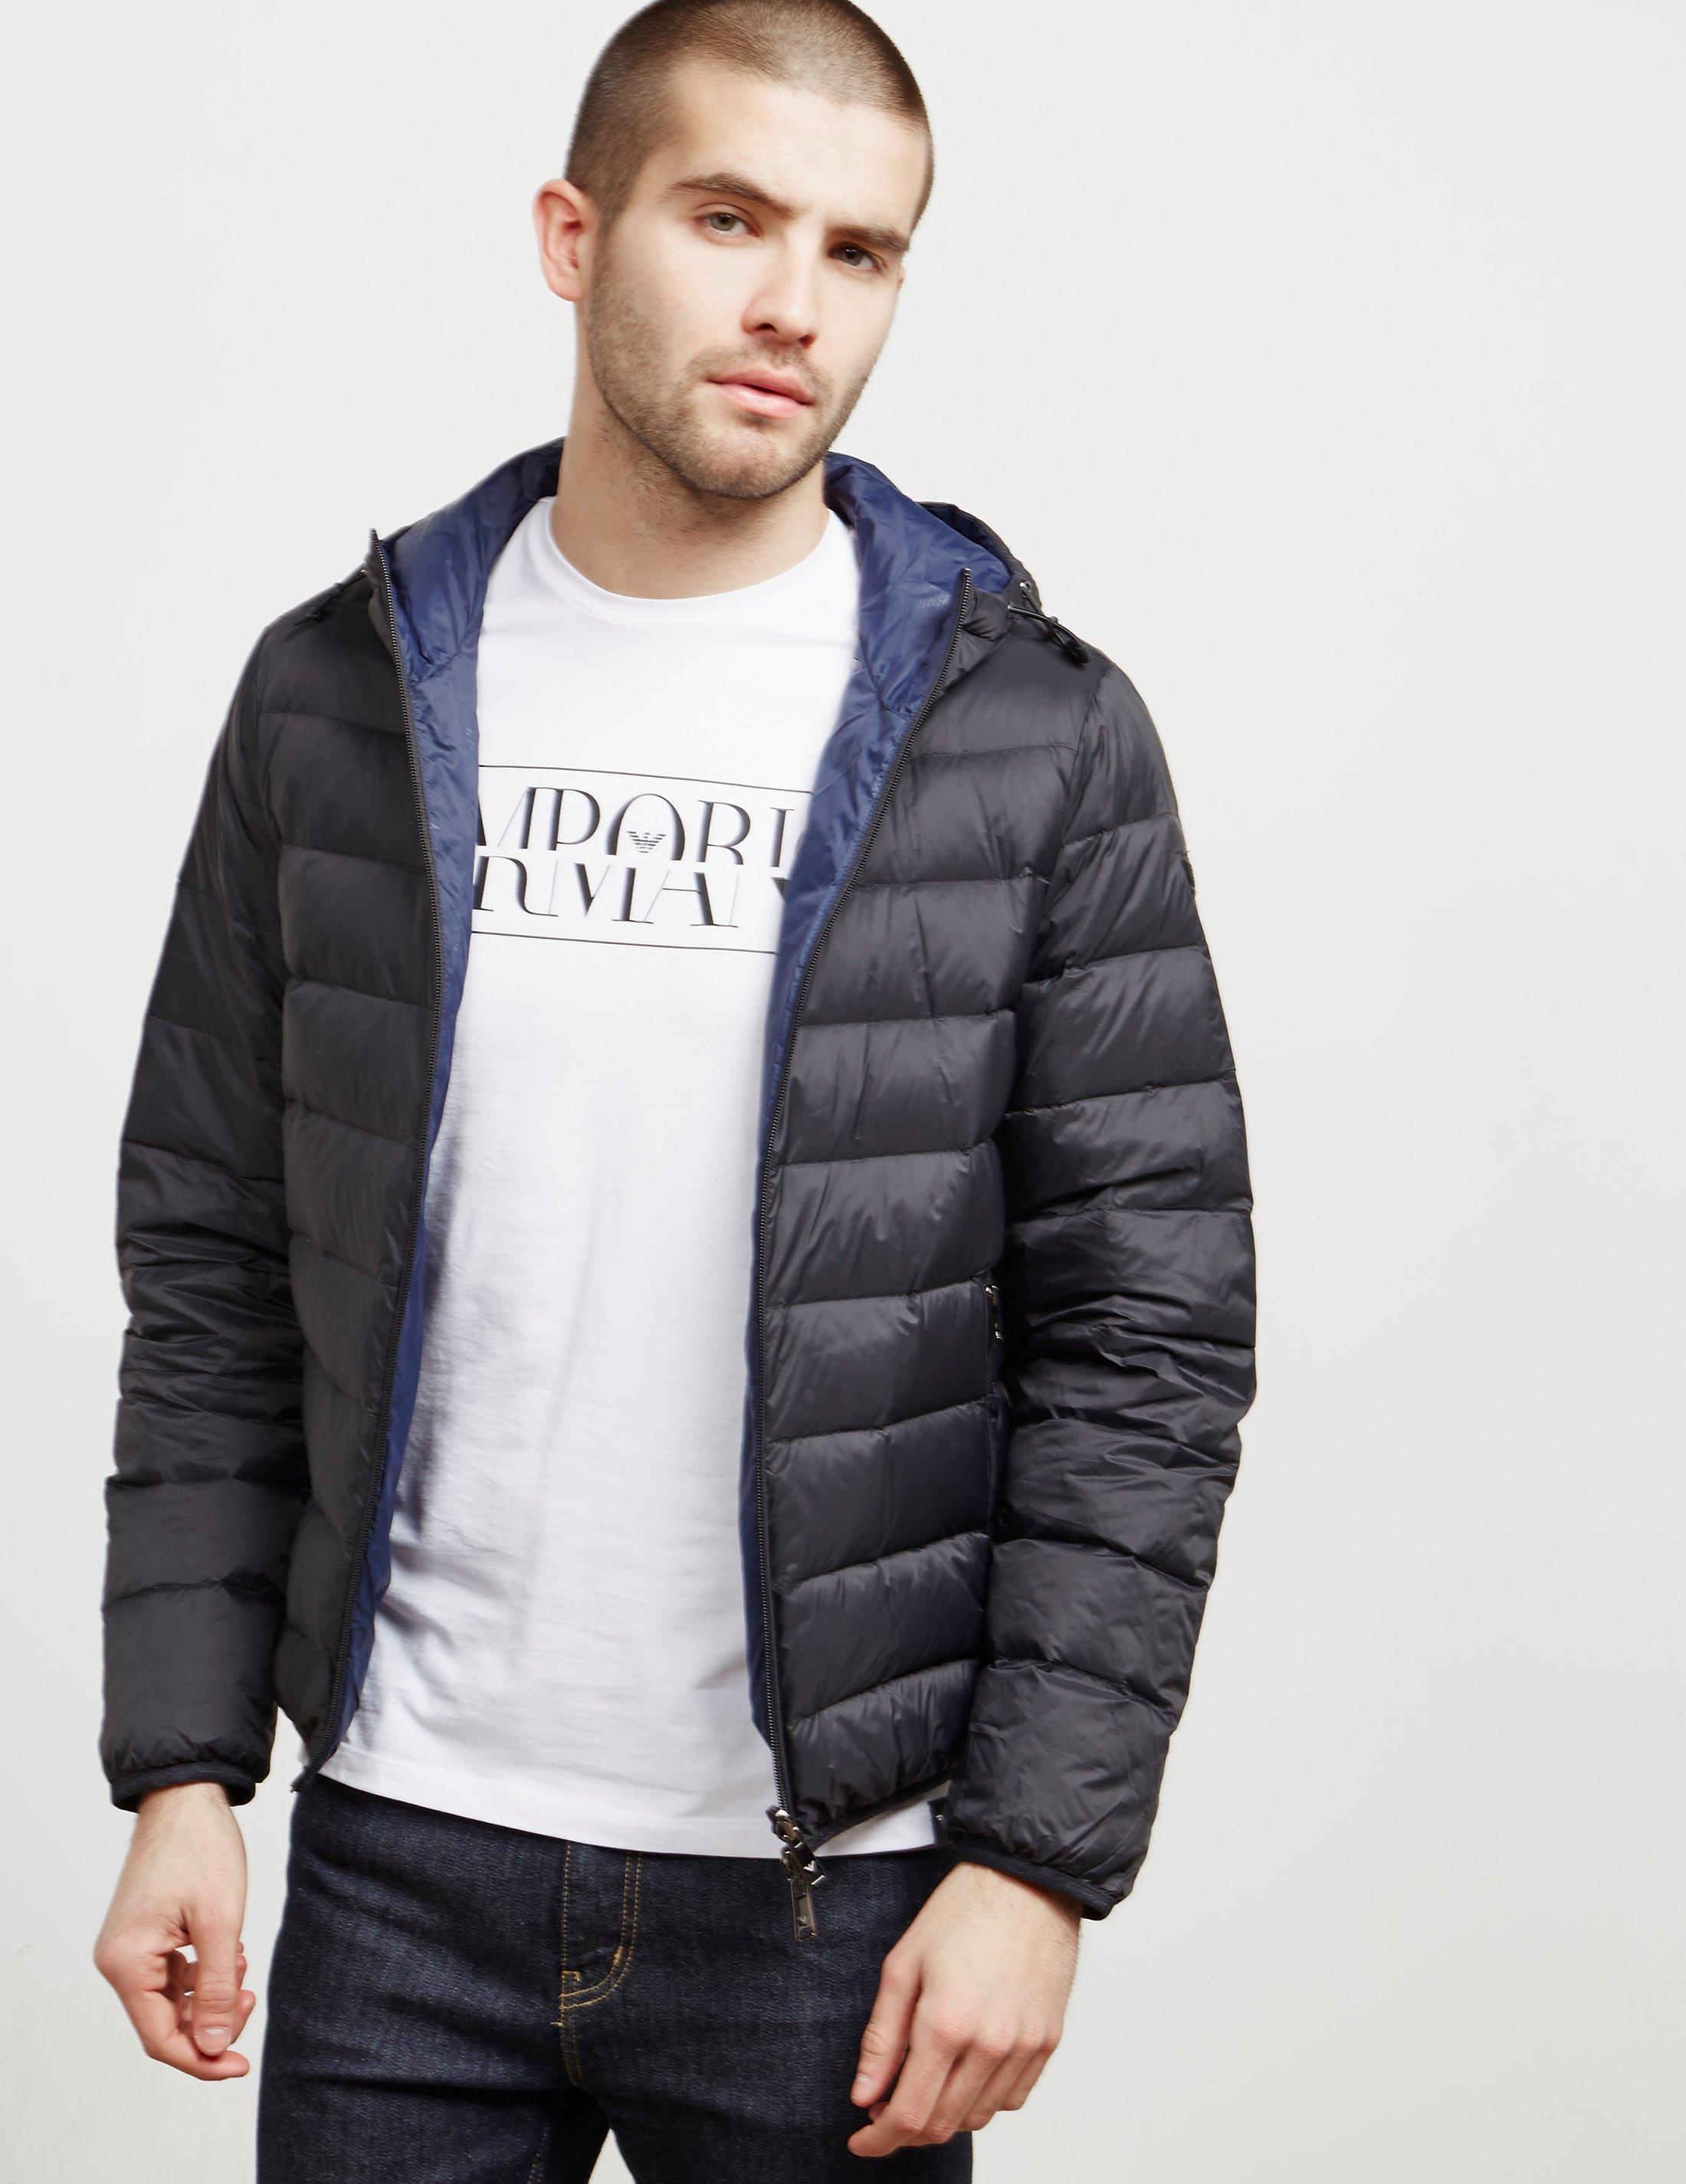 cc0227a3a6a3 Jacket Mens Black In Reversible Armani Down Emporio Padded For 5pTqXZTw